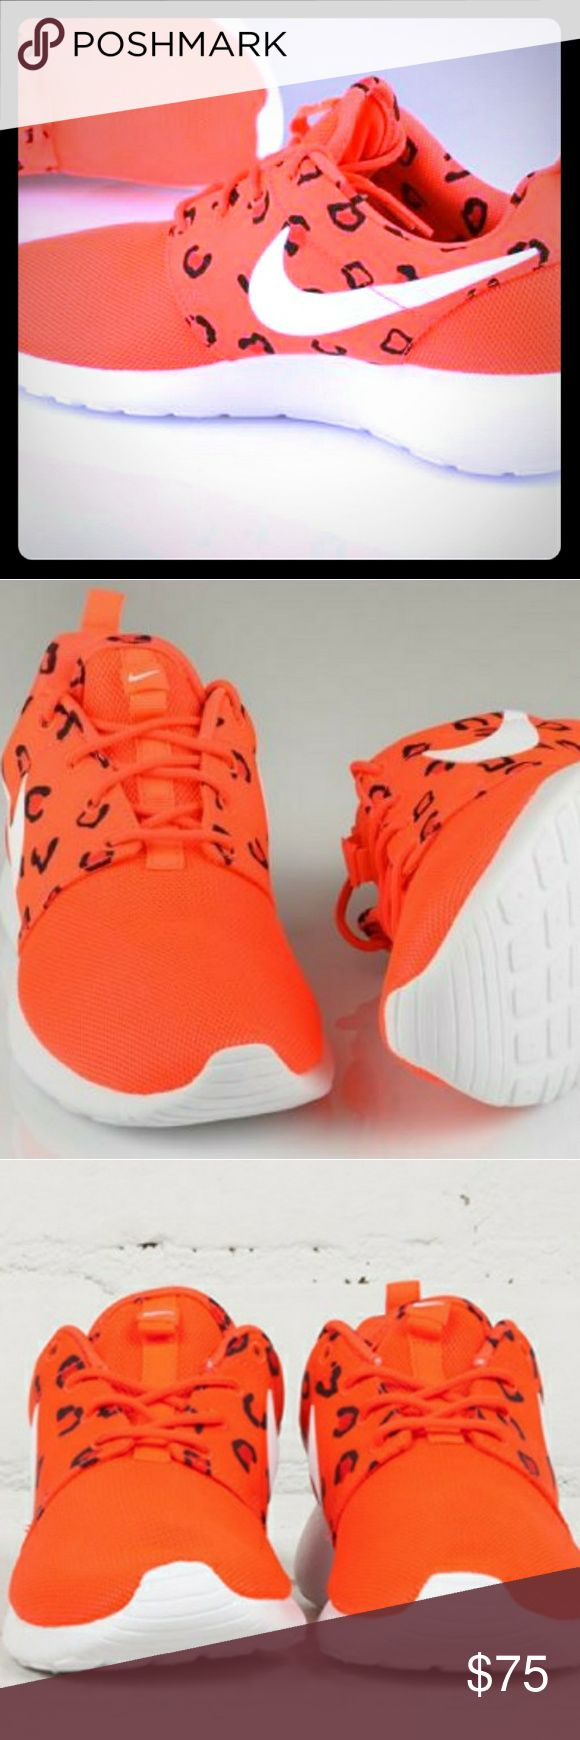 🔥NEW🔥 Women's NIKE ROSHE ONE Print Sz 10 NWOB Women's NIKE ROSHE ONE Print  *CHEETAH PRINT* Size: Women's 10/Men's 8.5 Color: Orange Cheetah Print  NOT WORK Nike Shoes Athletic Shoes